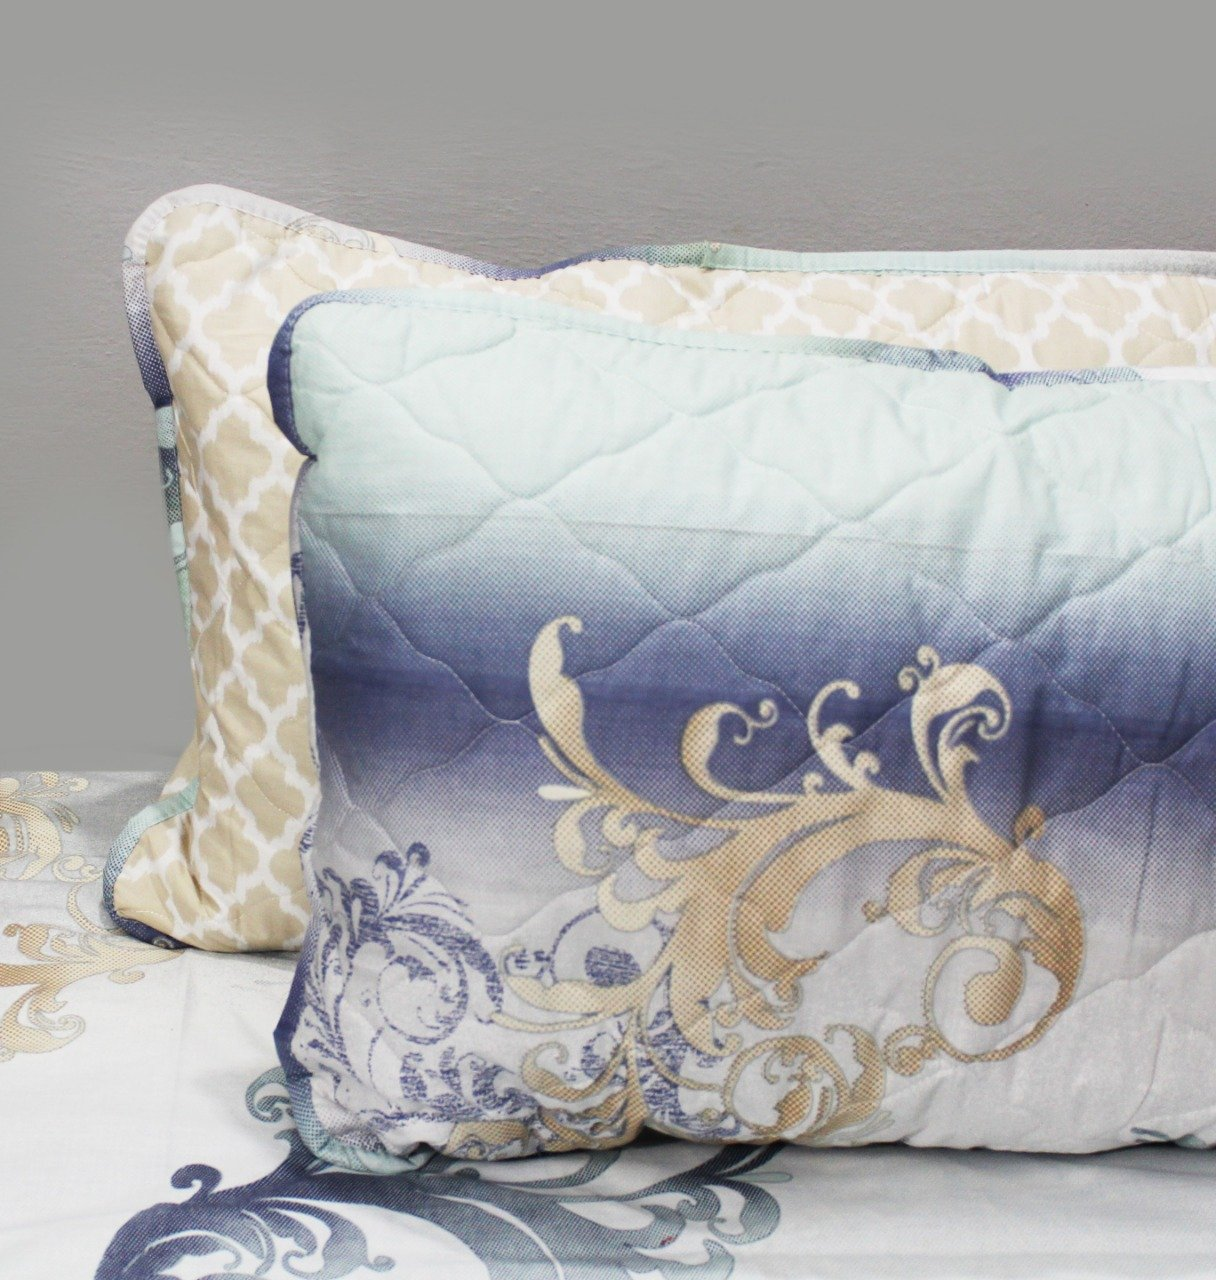 Export Quality Cotton Bed Spread Set - 6 pcs - Multi Patterned - waseeh.com